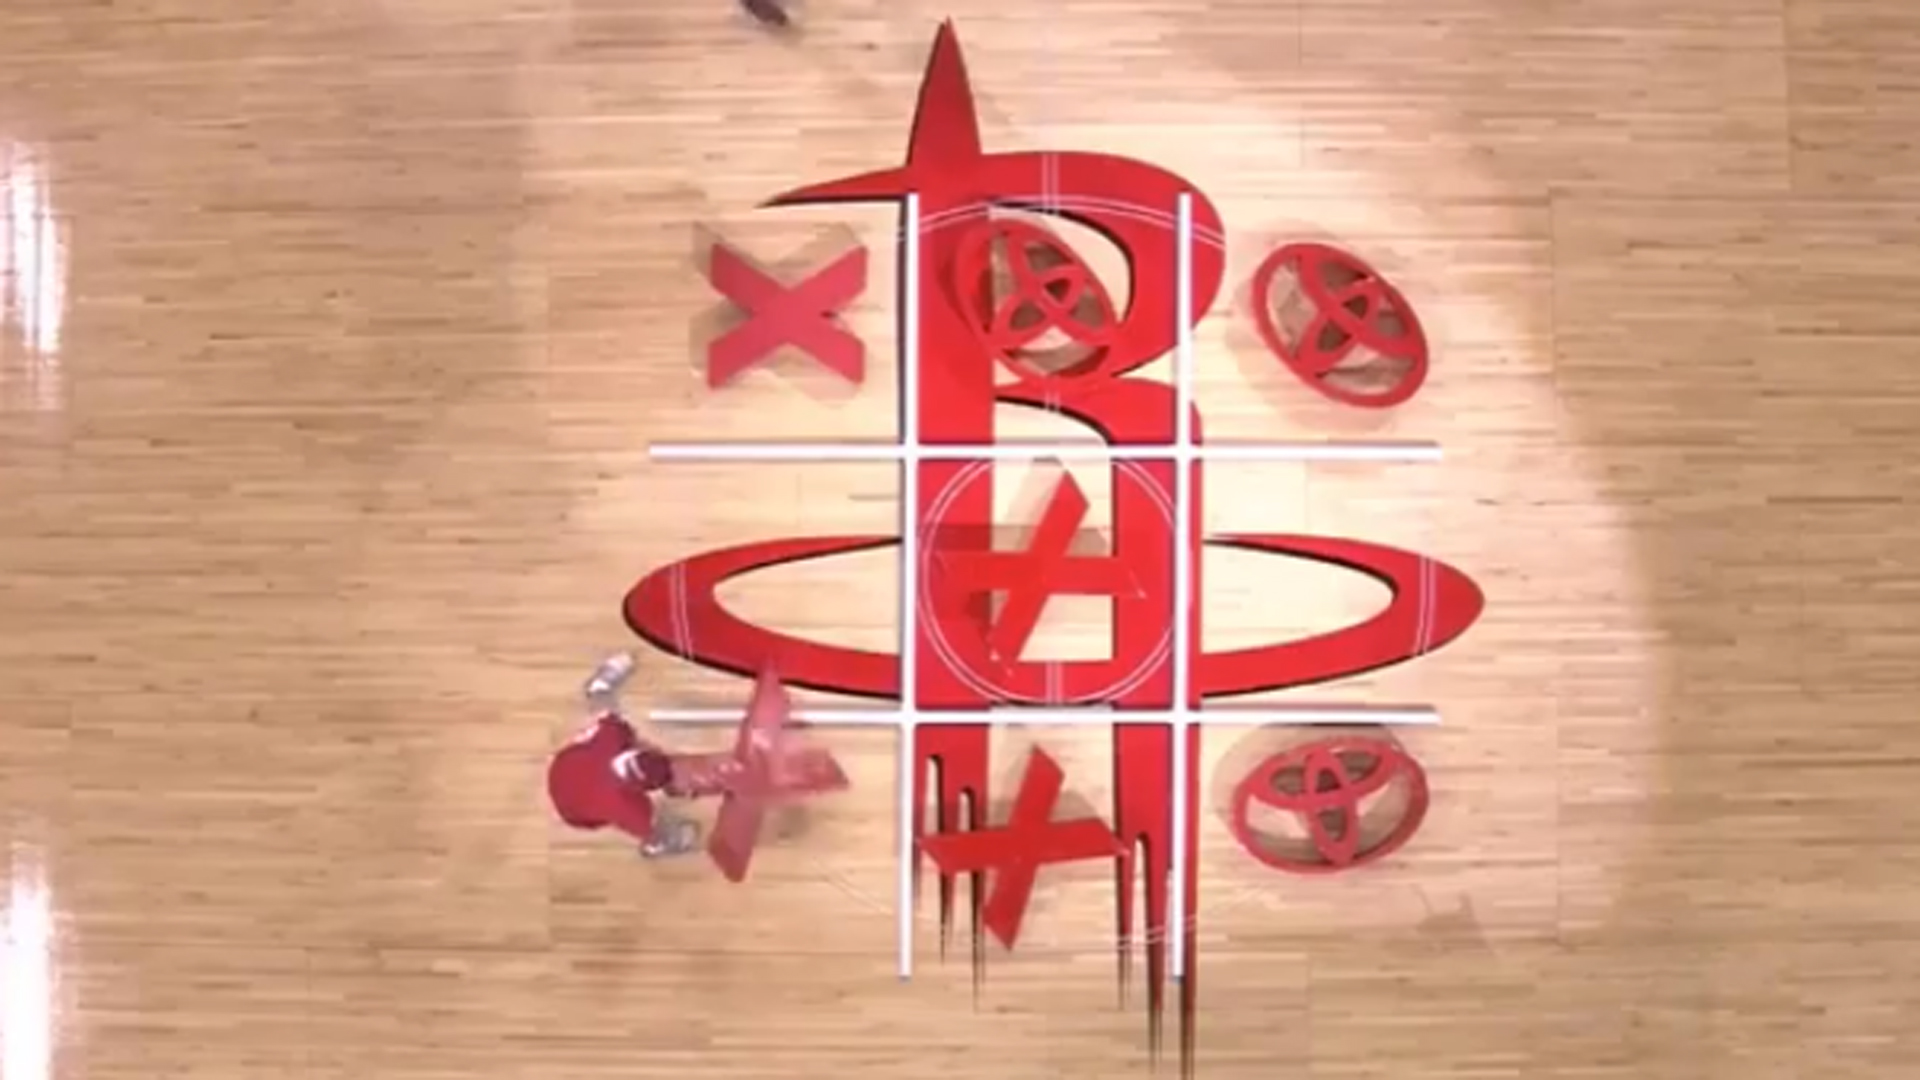 Rockets fans have no clue how to play tic-tac-toe